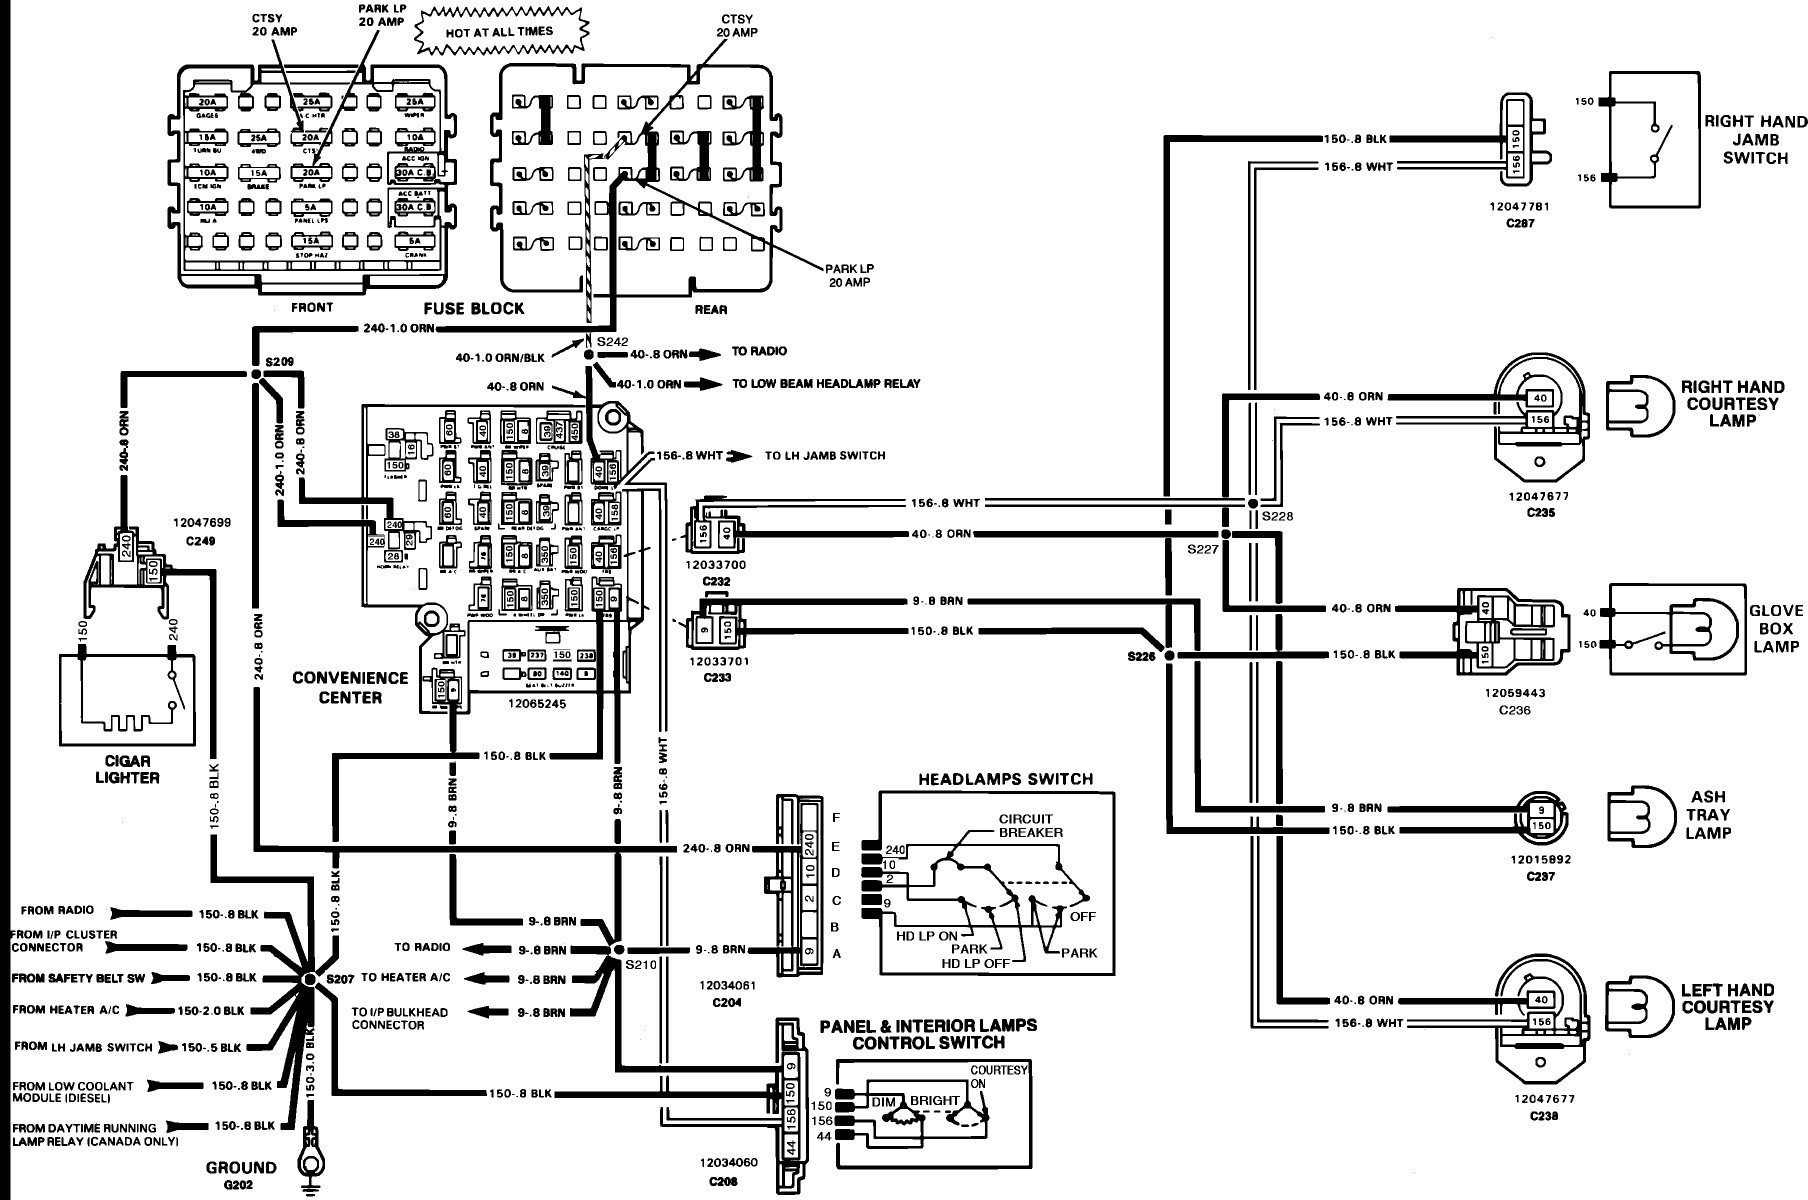 Related with yukon wiring diagram